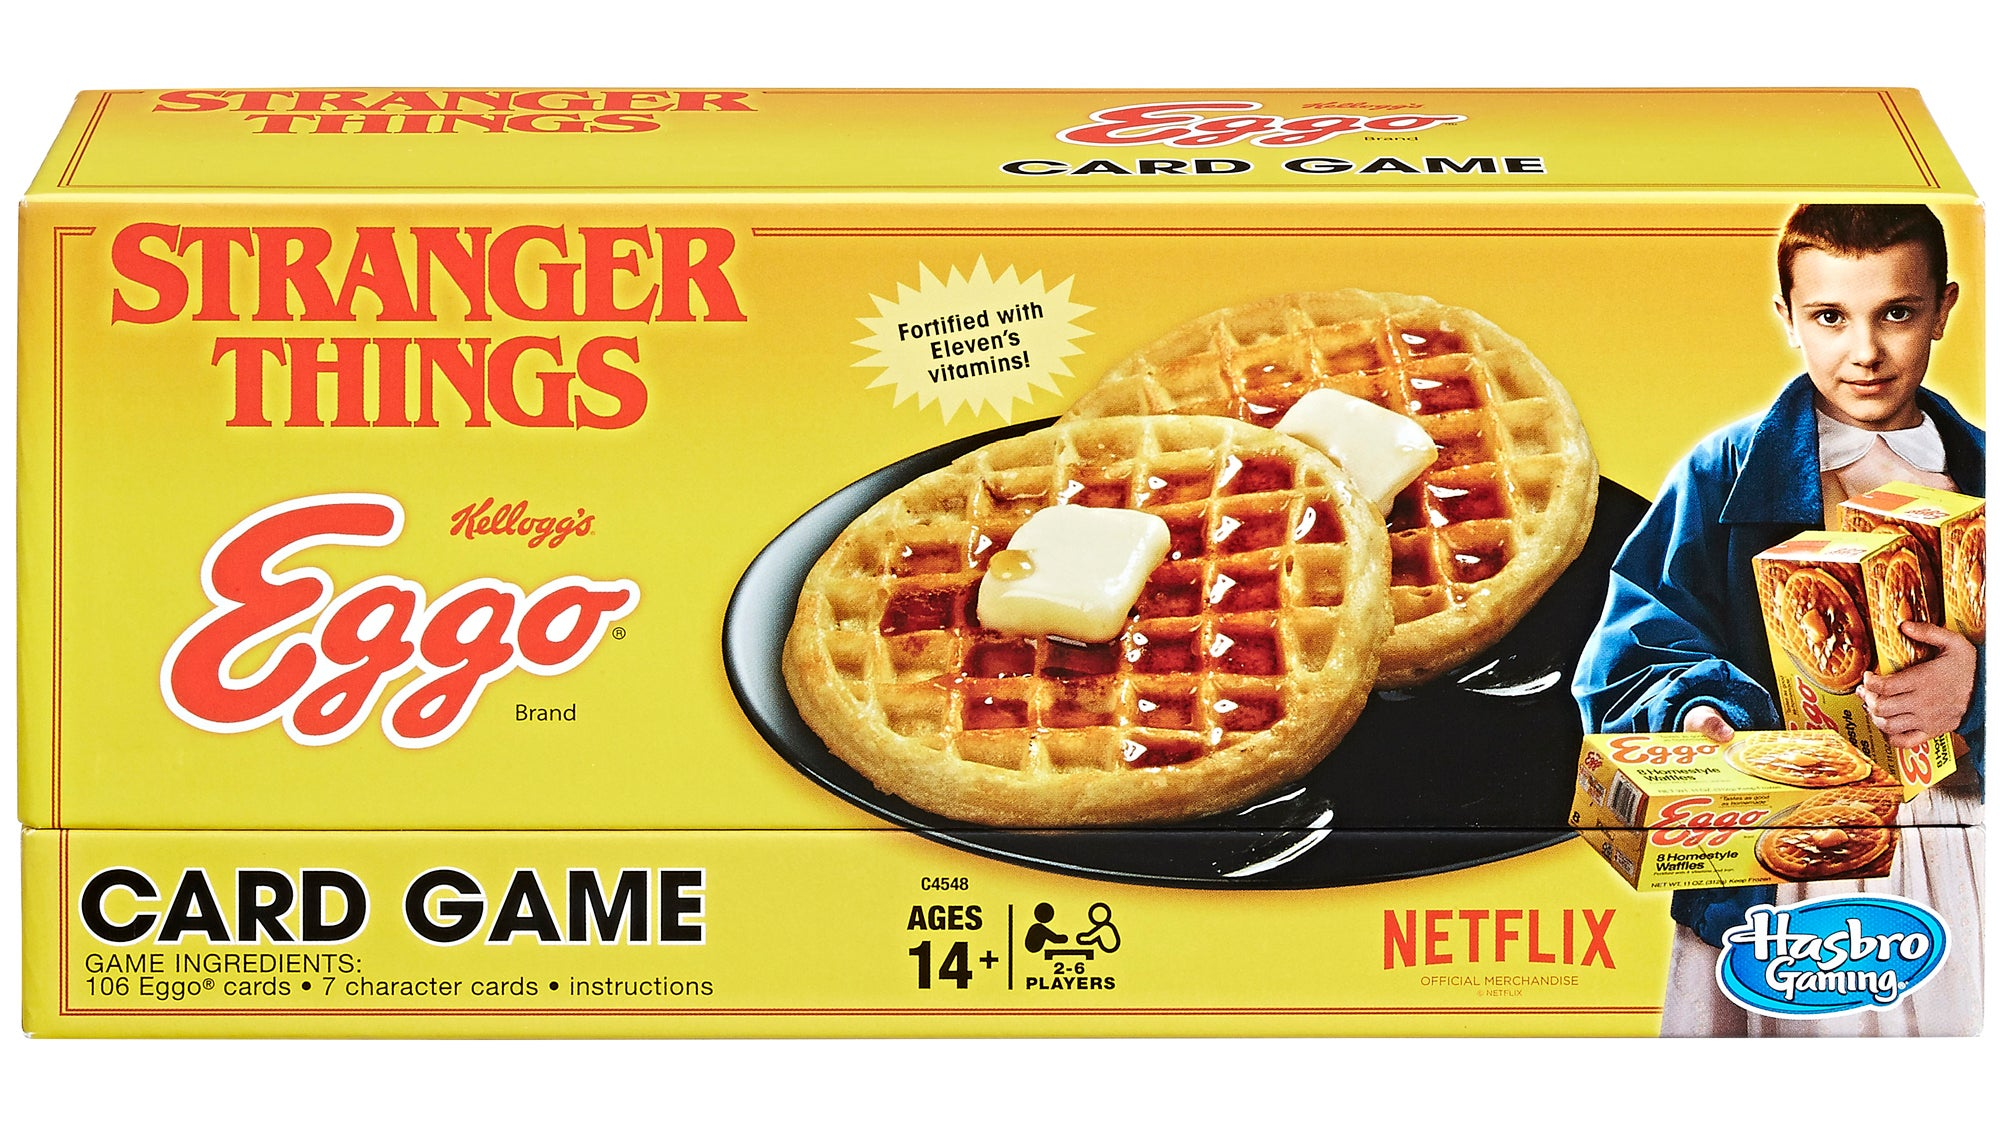 Stranger ThingsIs Getting A Waffle-Based Card Game, And I'm So Confused Right Now